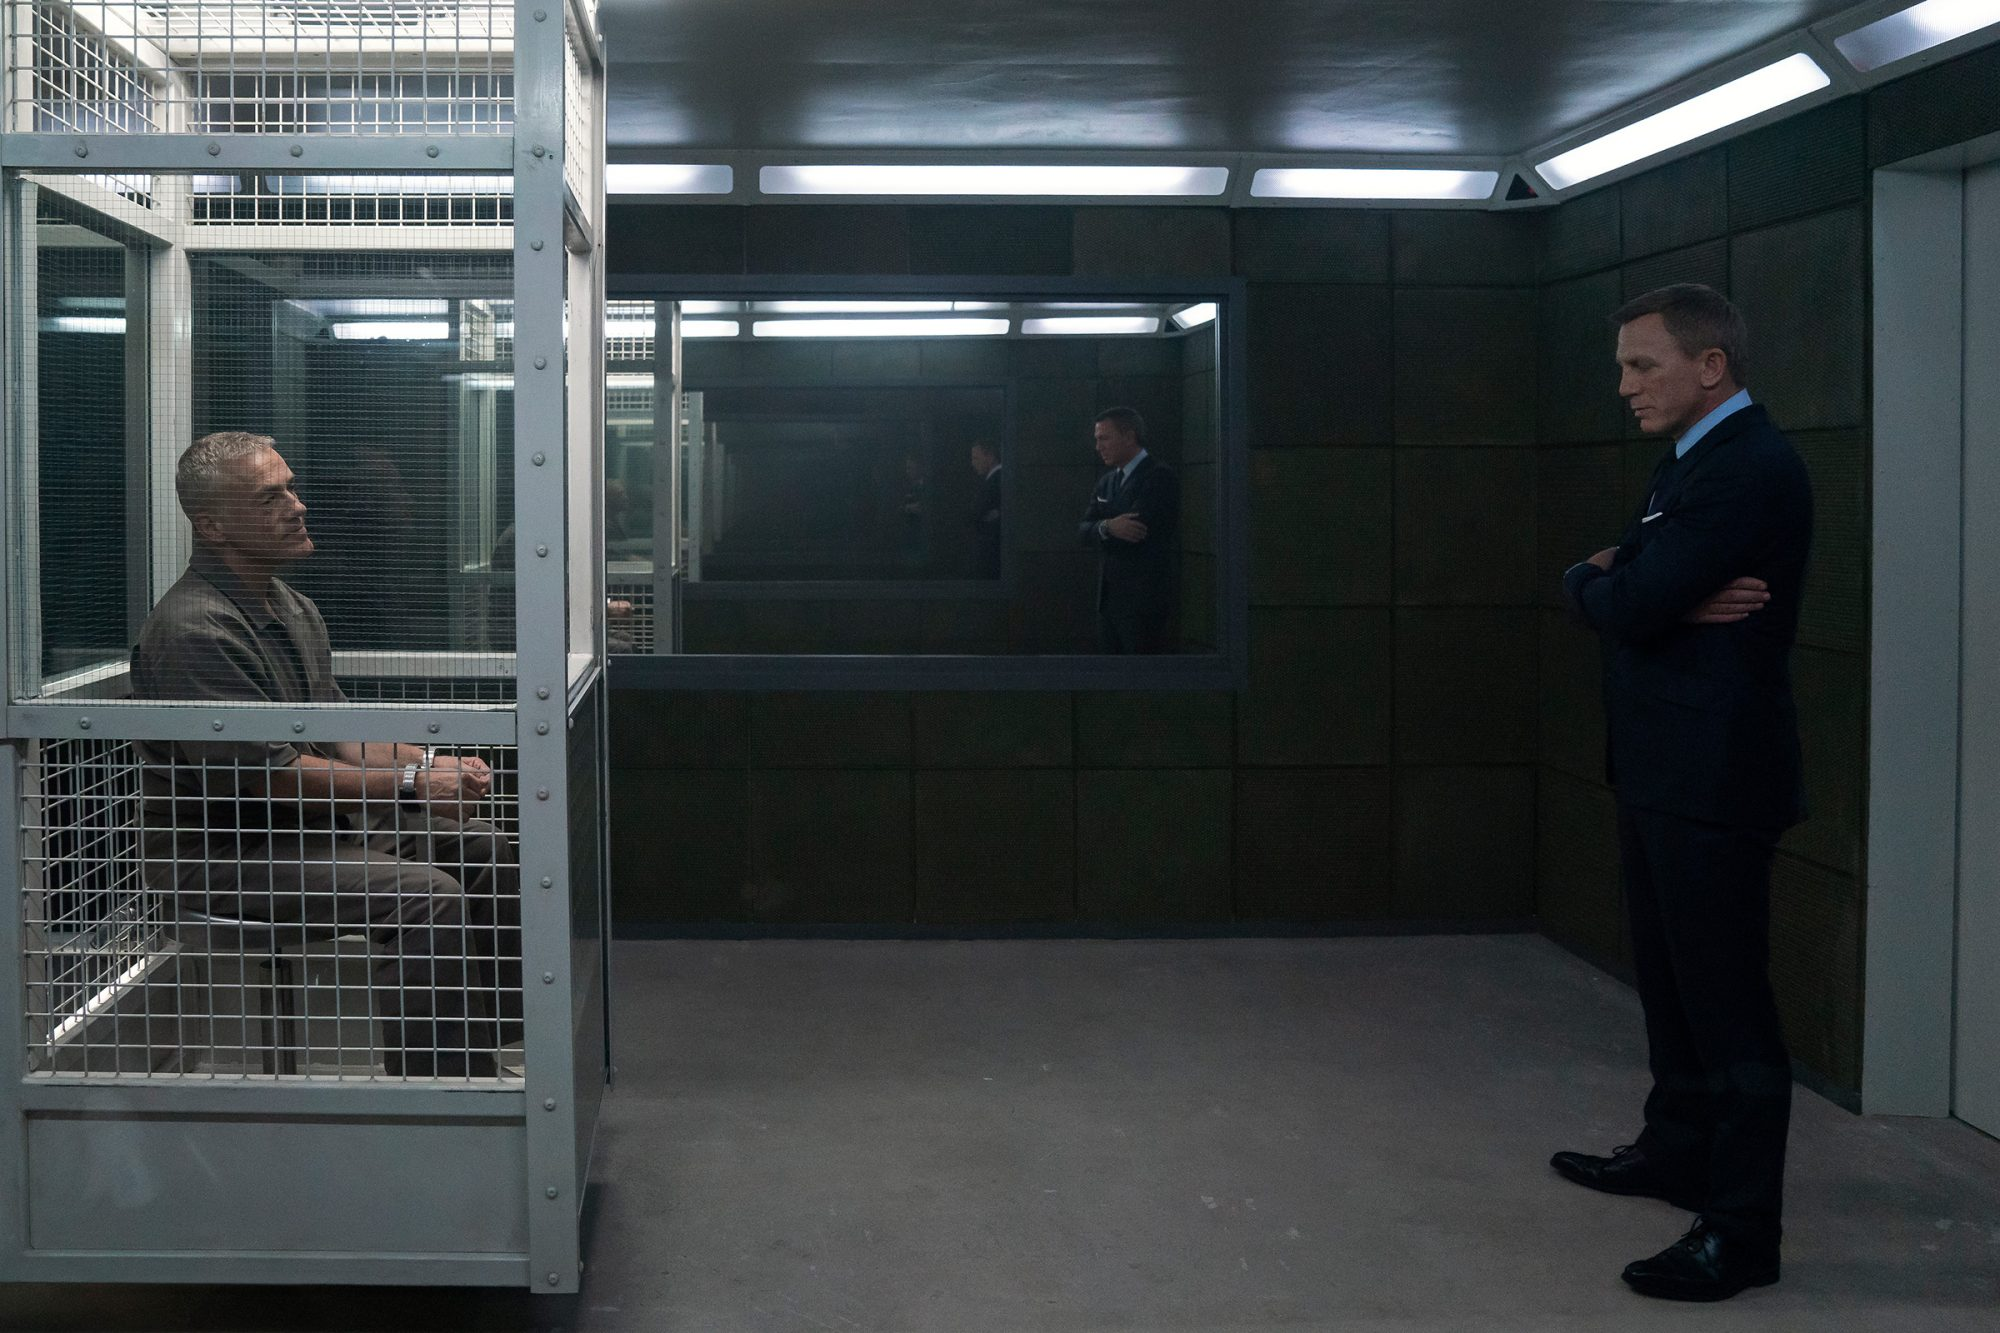 James Bond (Daniel Craig) visits Blofeld (Christoph Waltz) in his prison cell in NO TIME TO DIE, a DANJAQ and Metro Goldwyn Mayer Pictures film